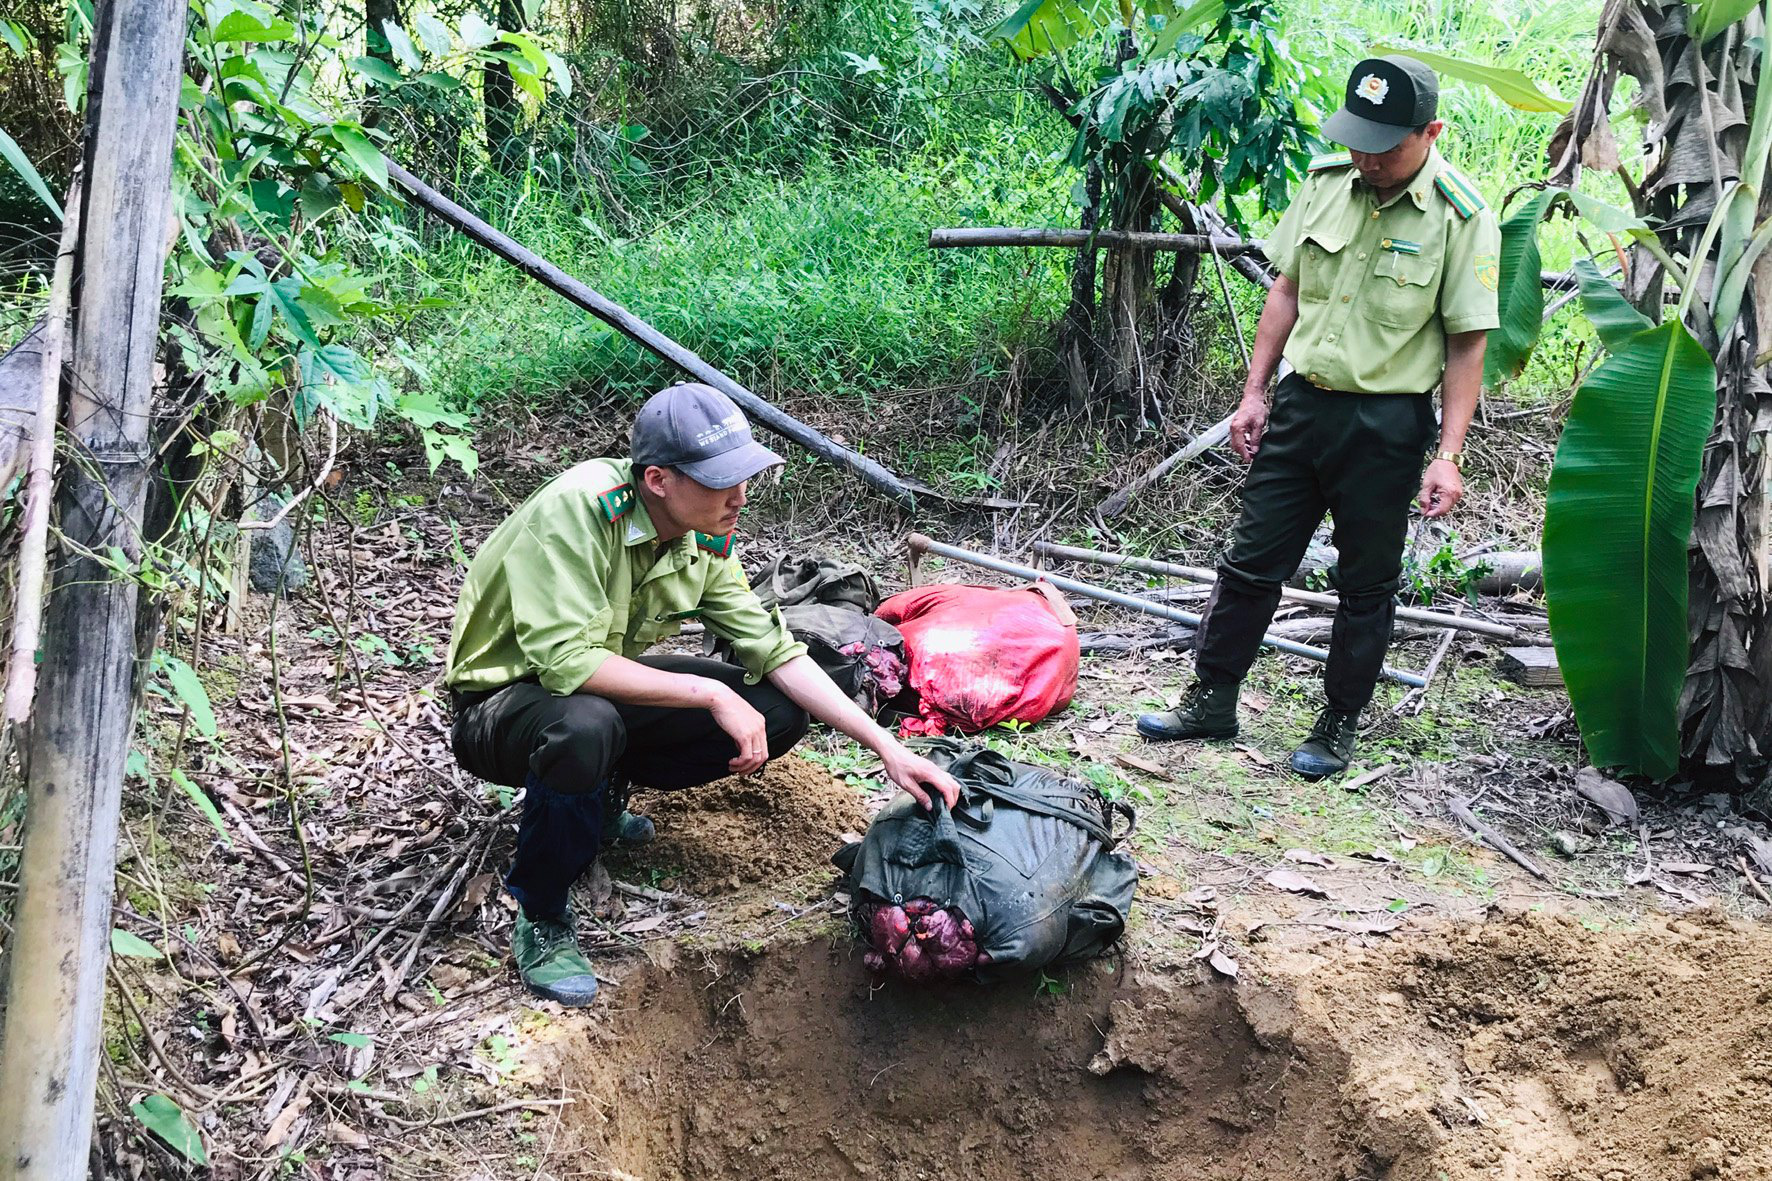 Authorities search for four suspected of slaughtering 200kg gaur in Vietnam national park